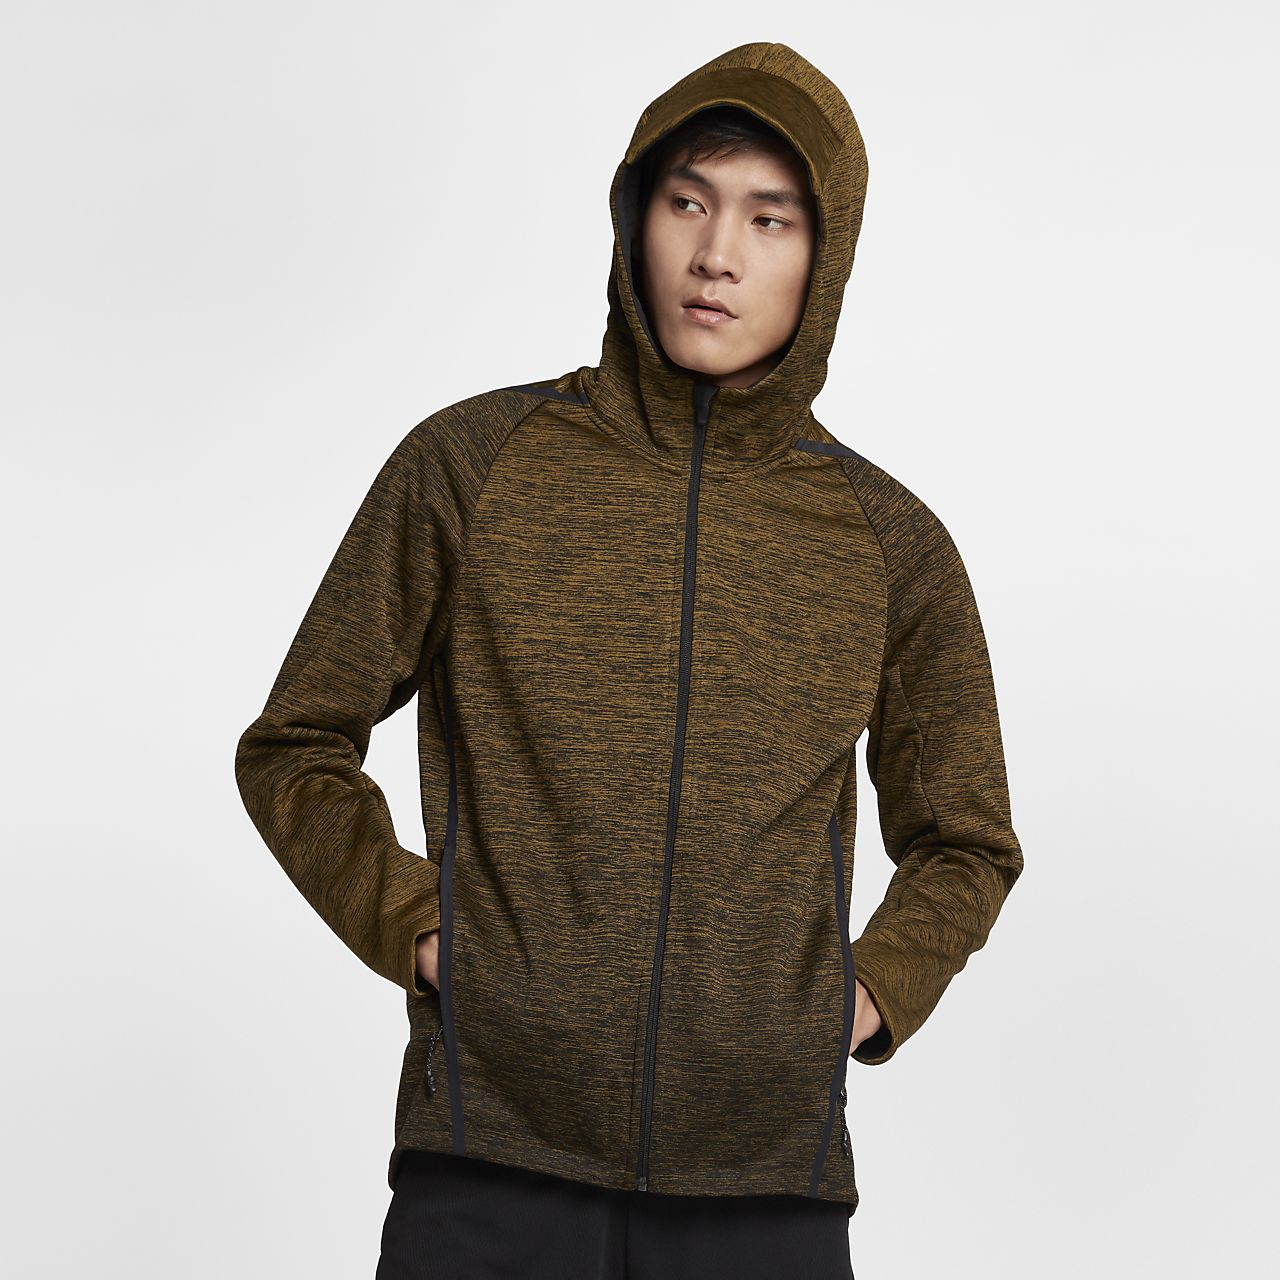 Nike Therma-Sphere Premium Men's Training Jacket